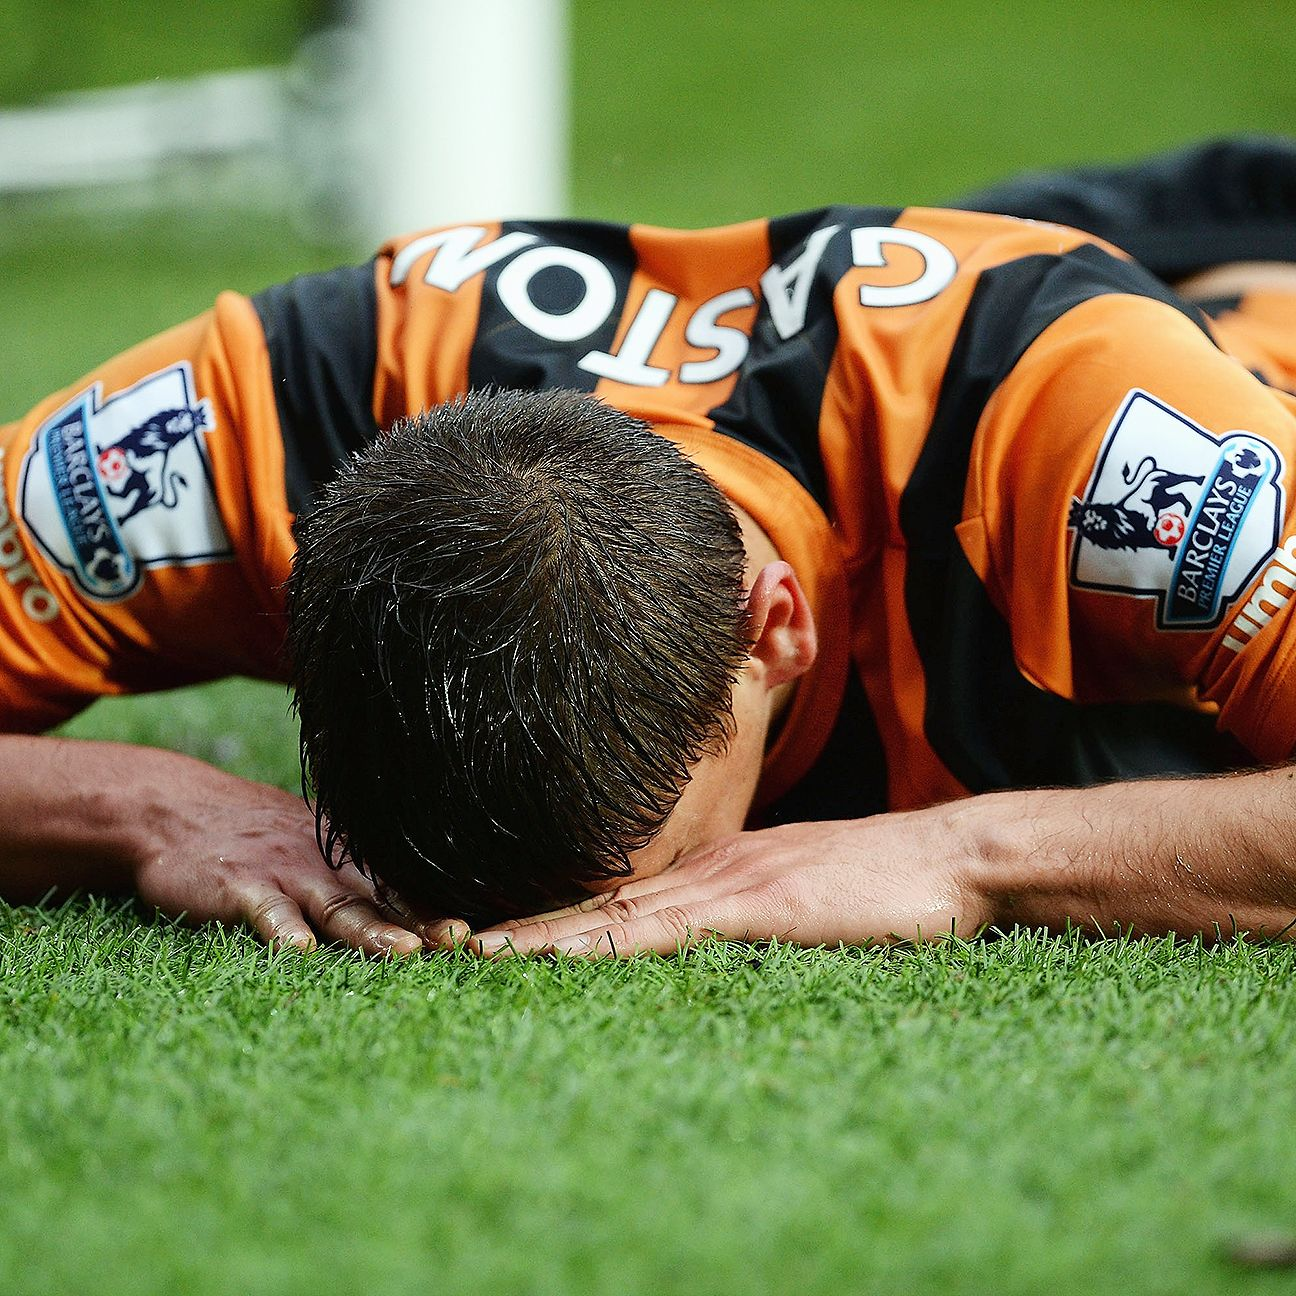 Hull City have lost their last three Premier League encounters after Saturday's 3-0 defeat to Newcastle.